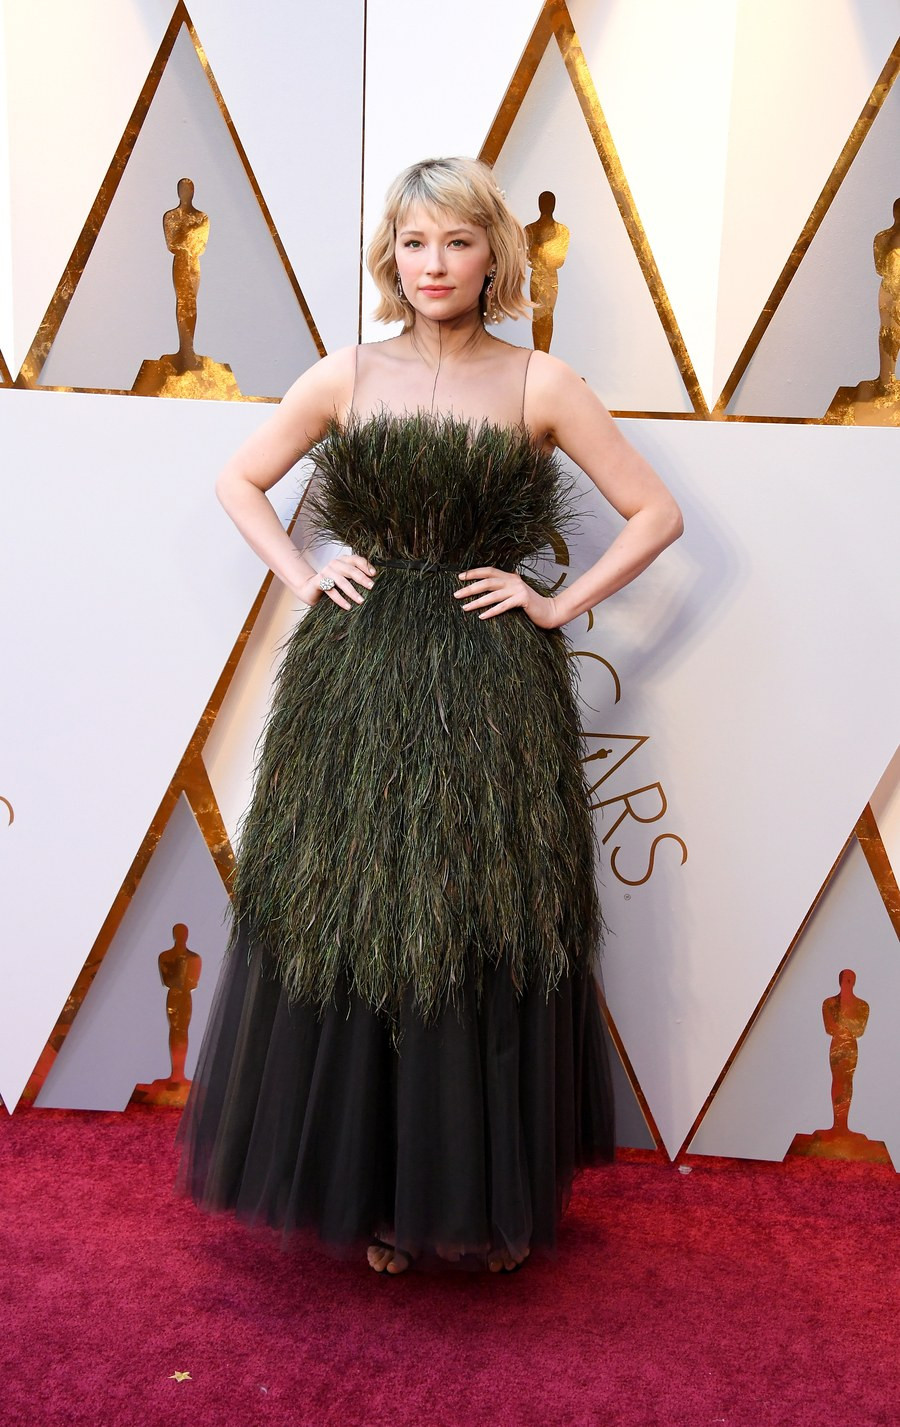 Haley Bennet wearing Dior Oscars 2018